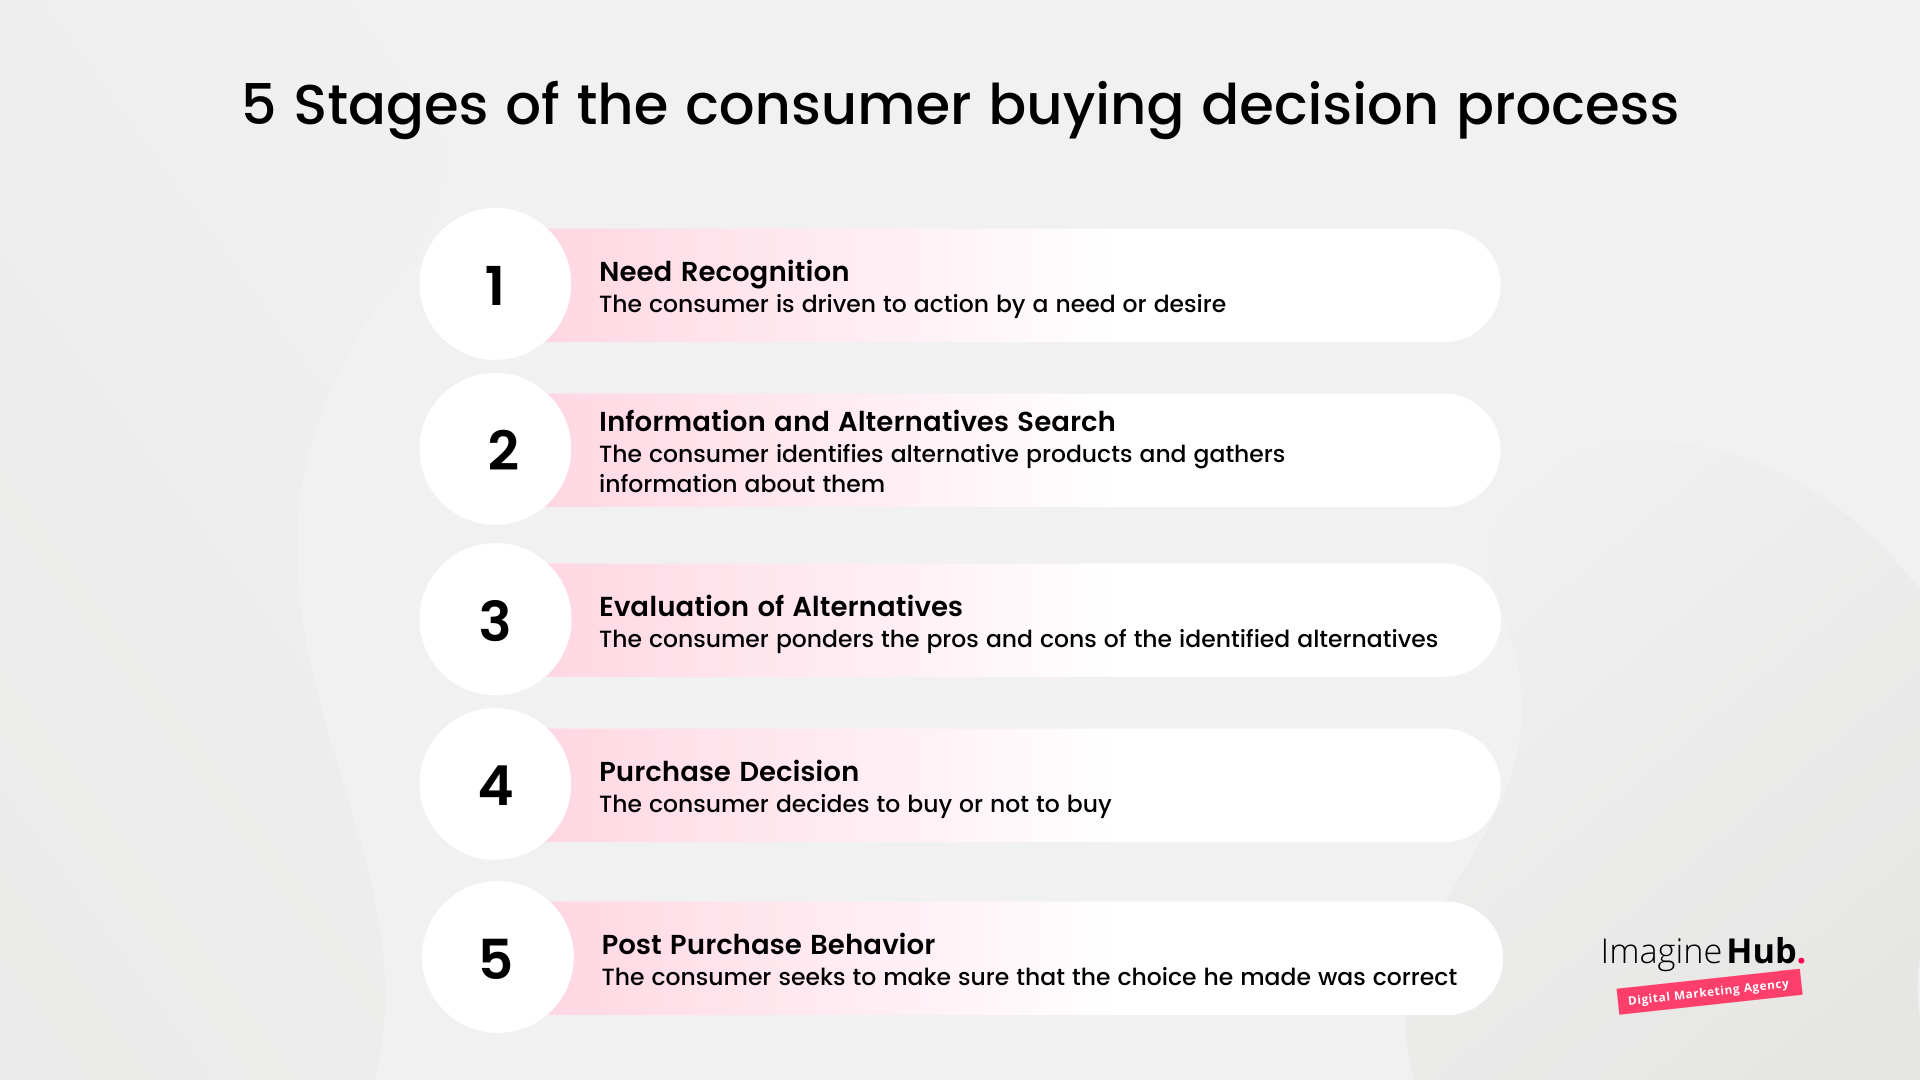 5 Stages of the consumer buying decision process